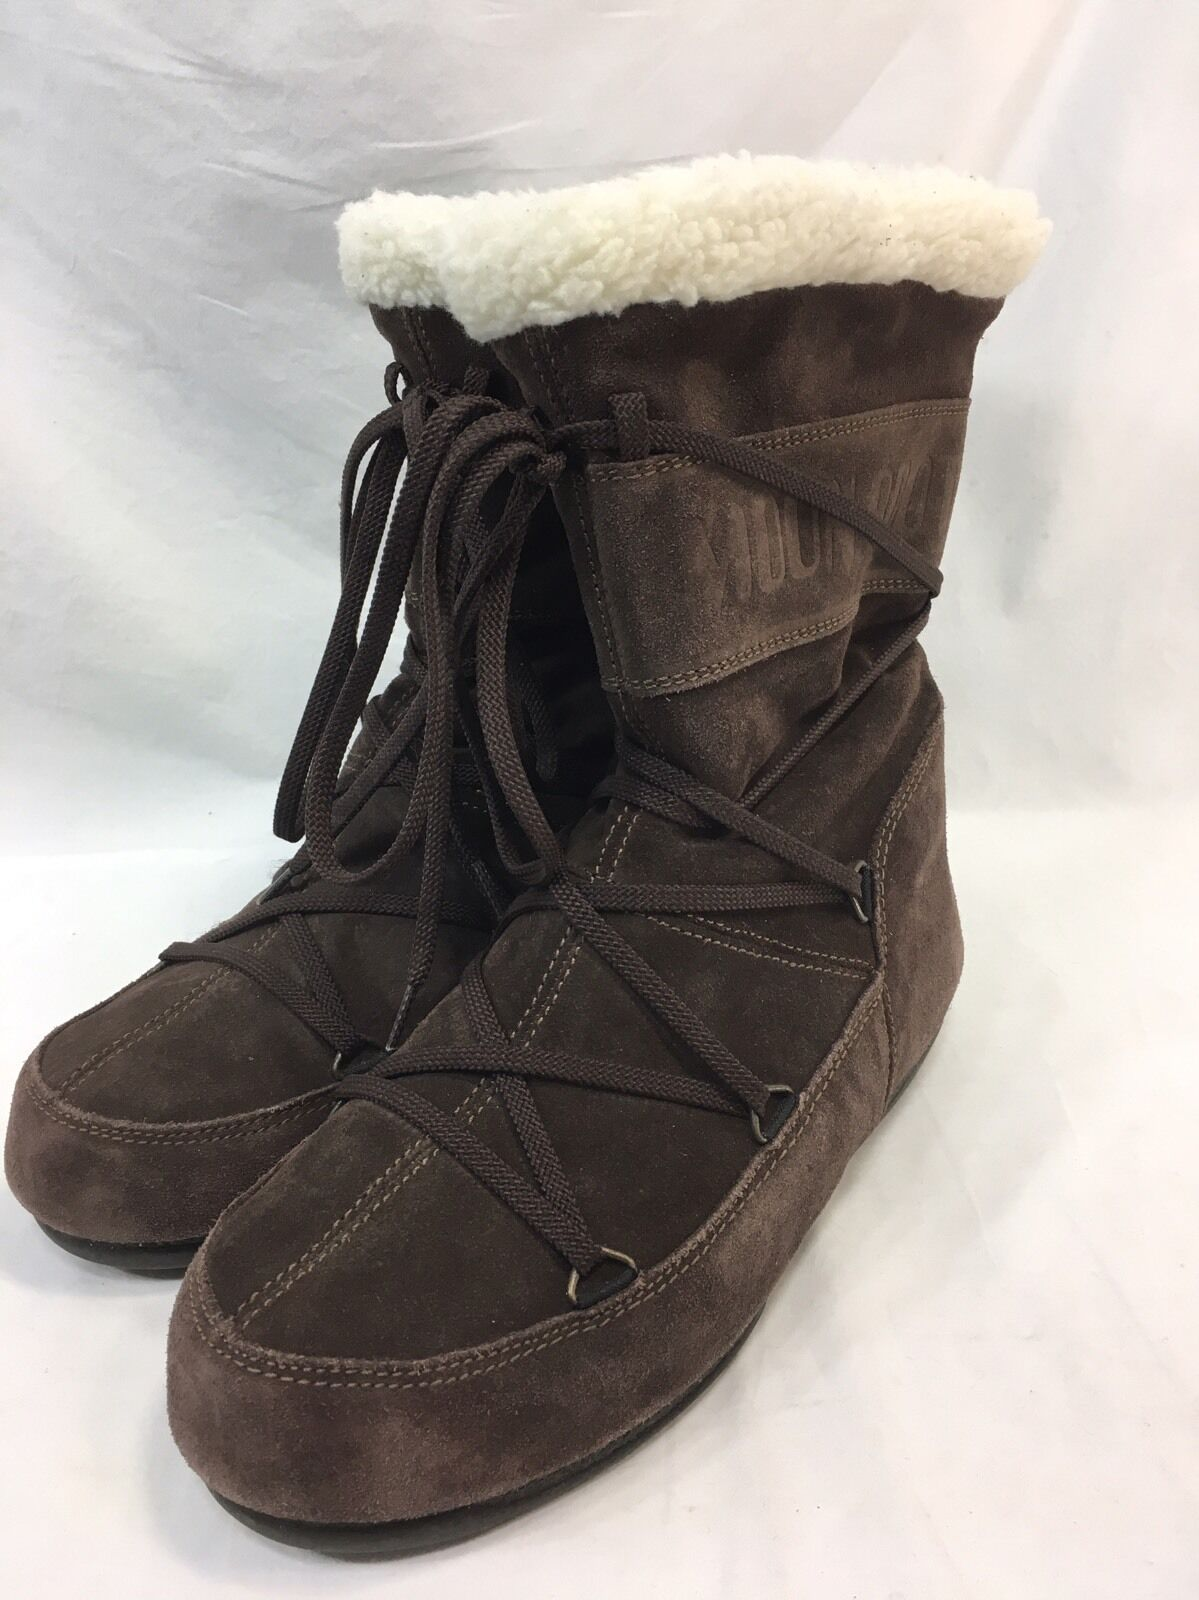 Tecnica Moon Stiefel Fashion Winter Braun Suede Laces Damenschuhe Größe 6.5 Pull-On Laces Suede EUC e845ee